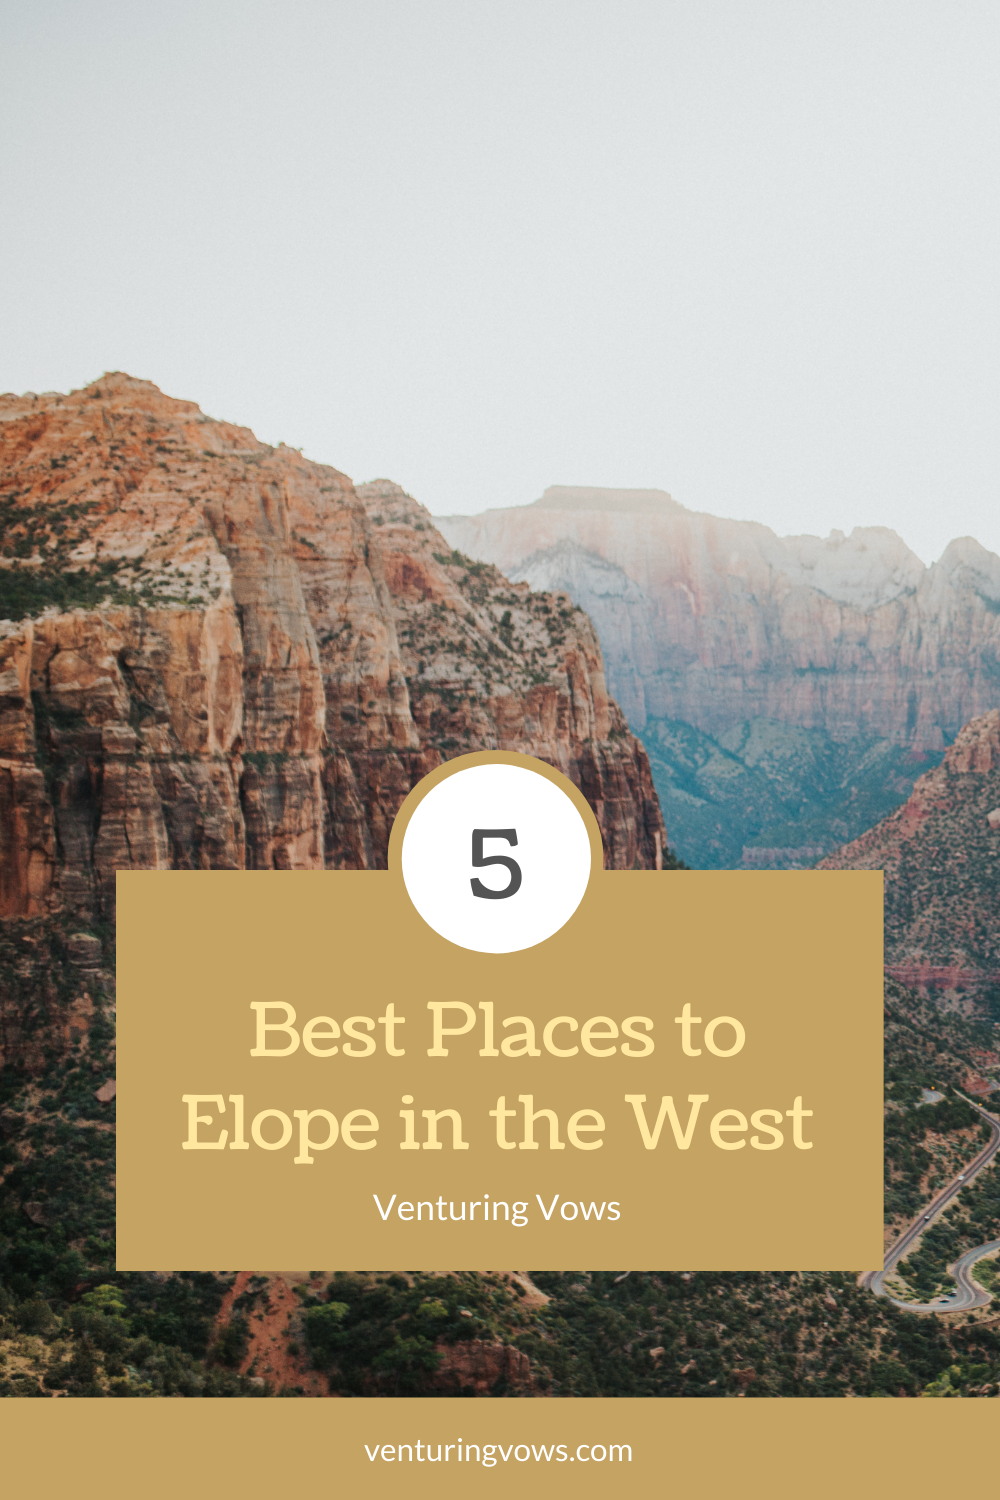 Best Places to Elope in the West